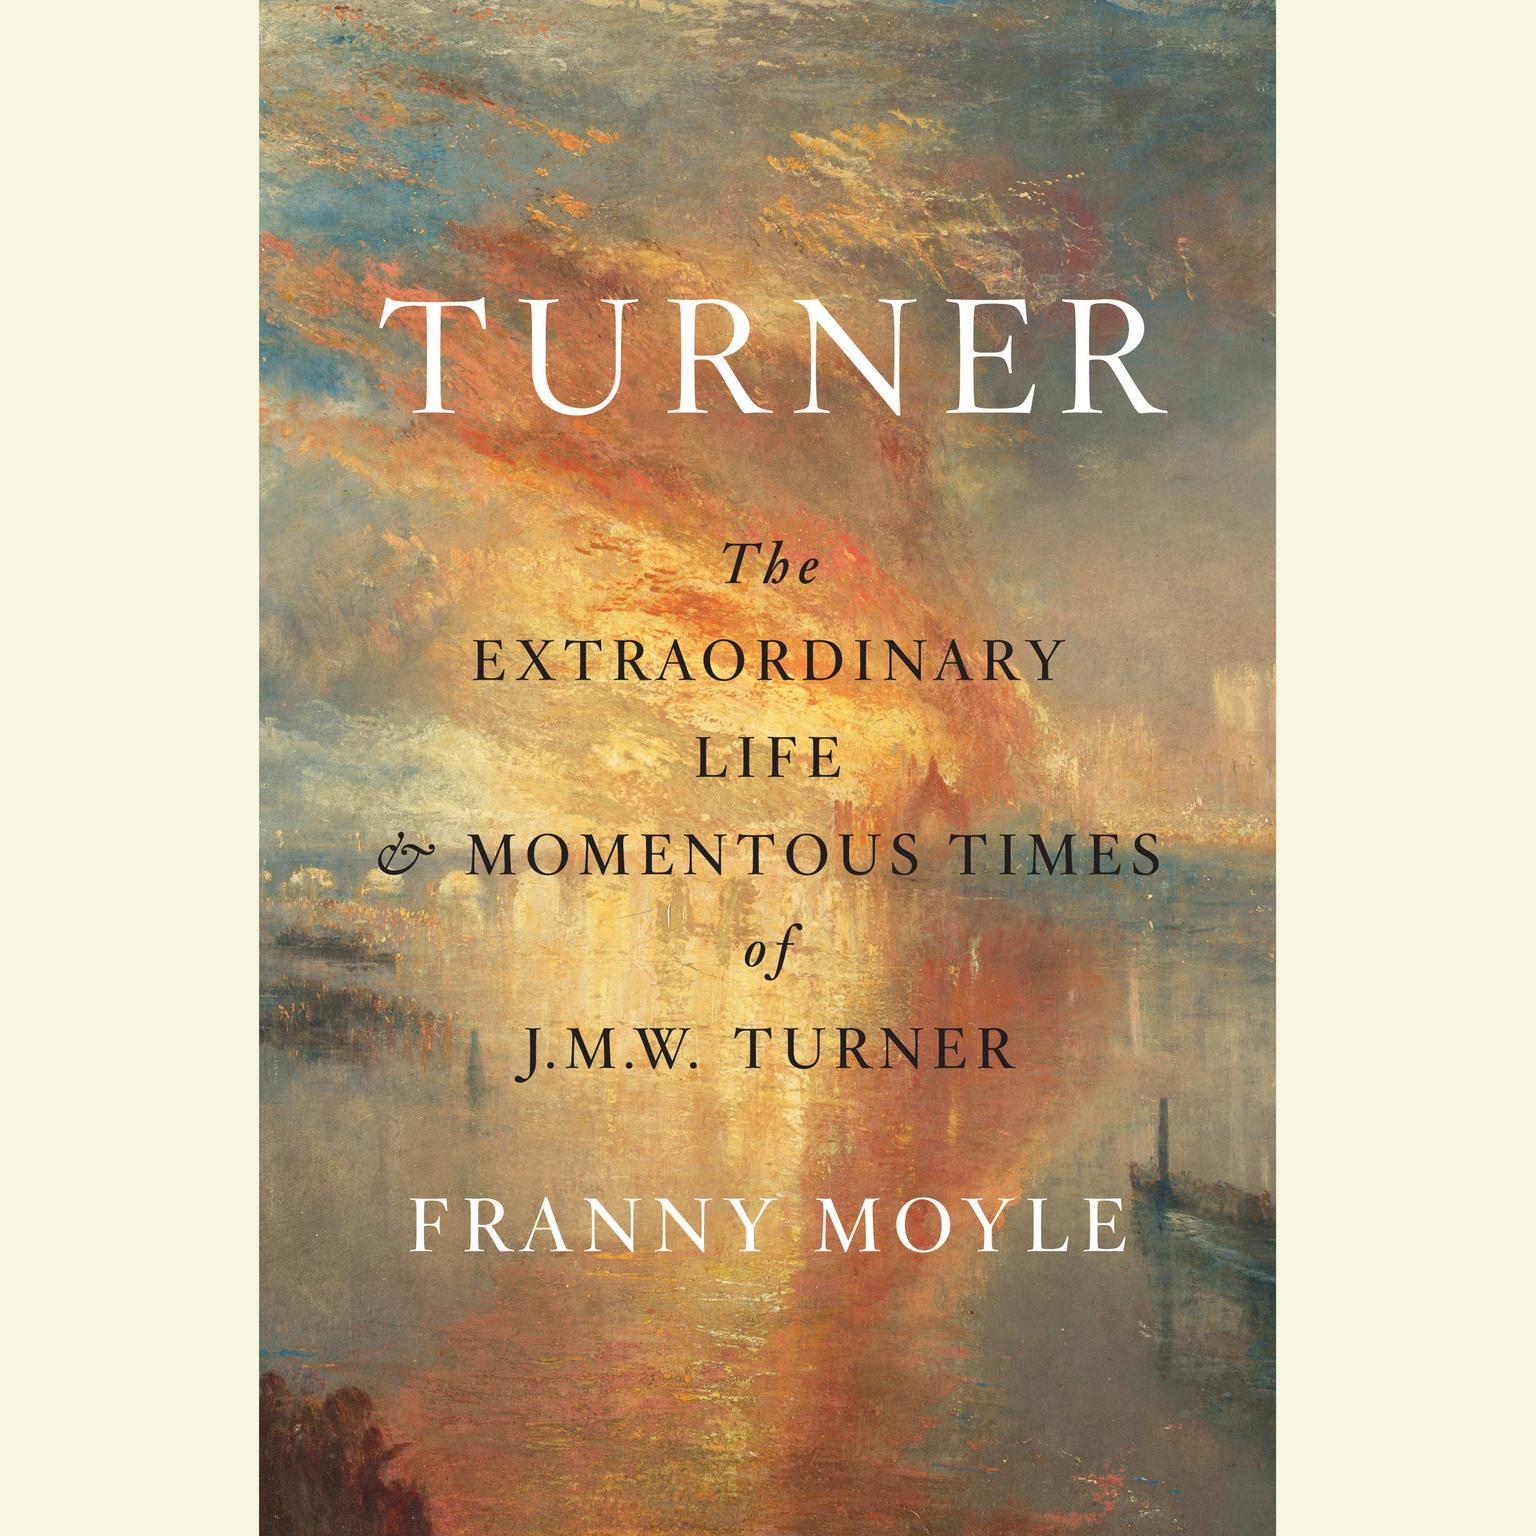 Printable Turner: The Extraordinary Life and Momentous Times of J. M. W. Turner Audiobook Cover Art